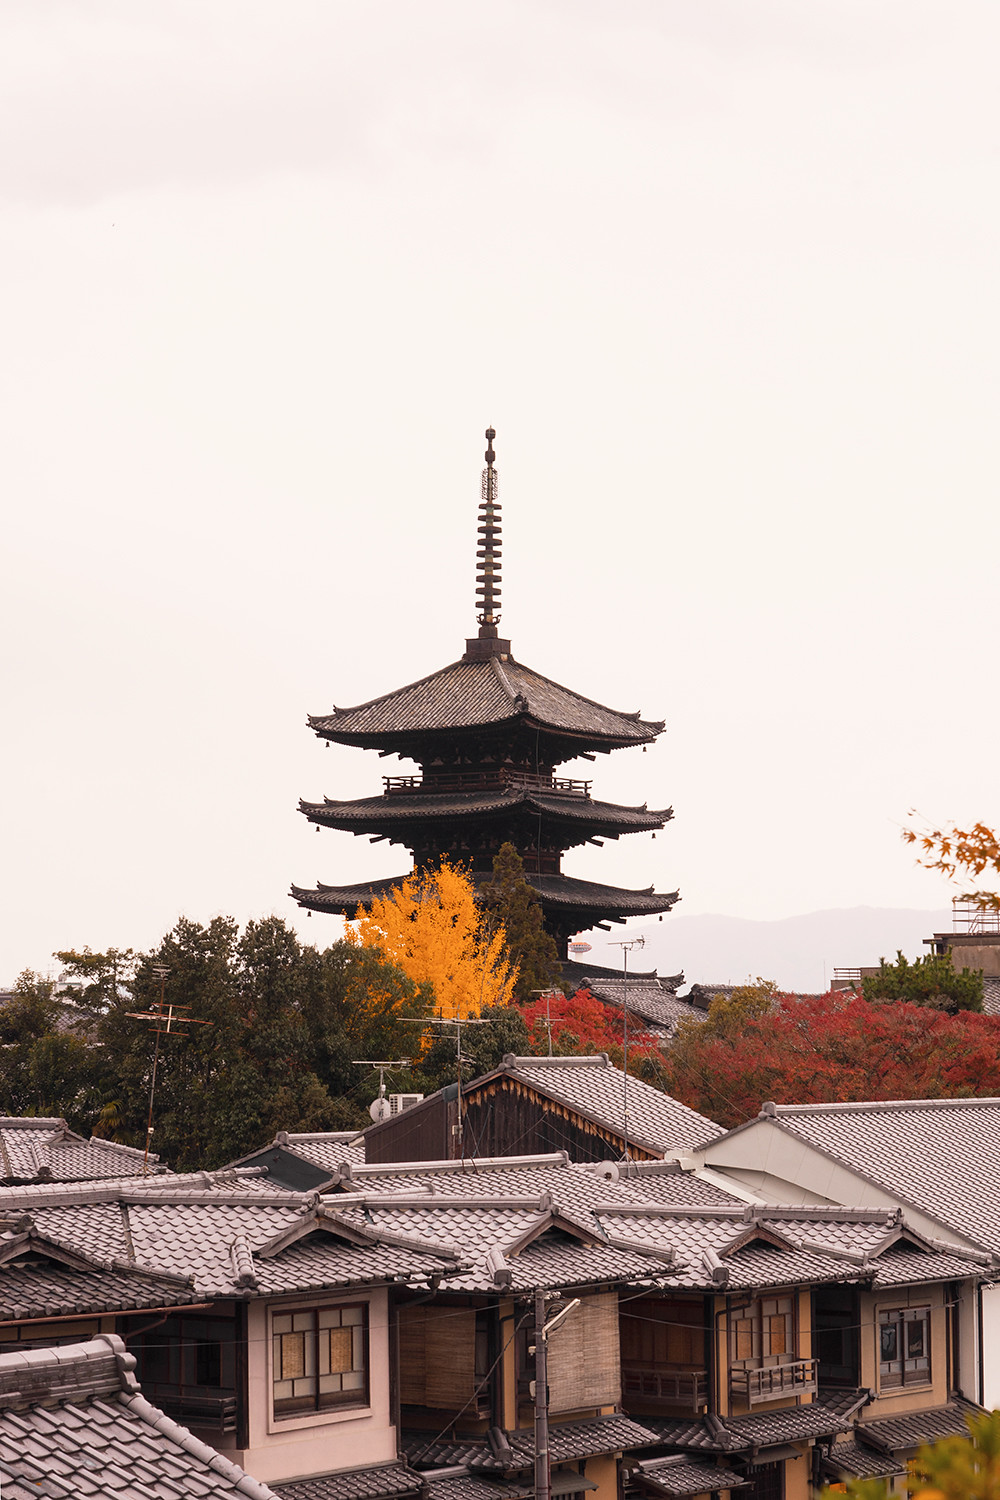 21kyoto-gion-pagoda-architecture-japan-travel